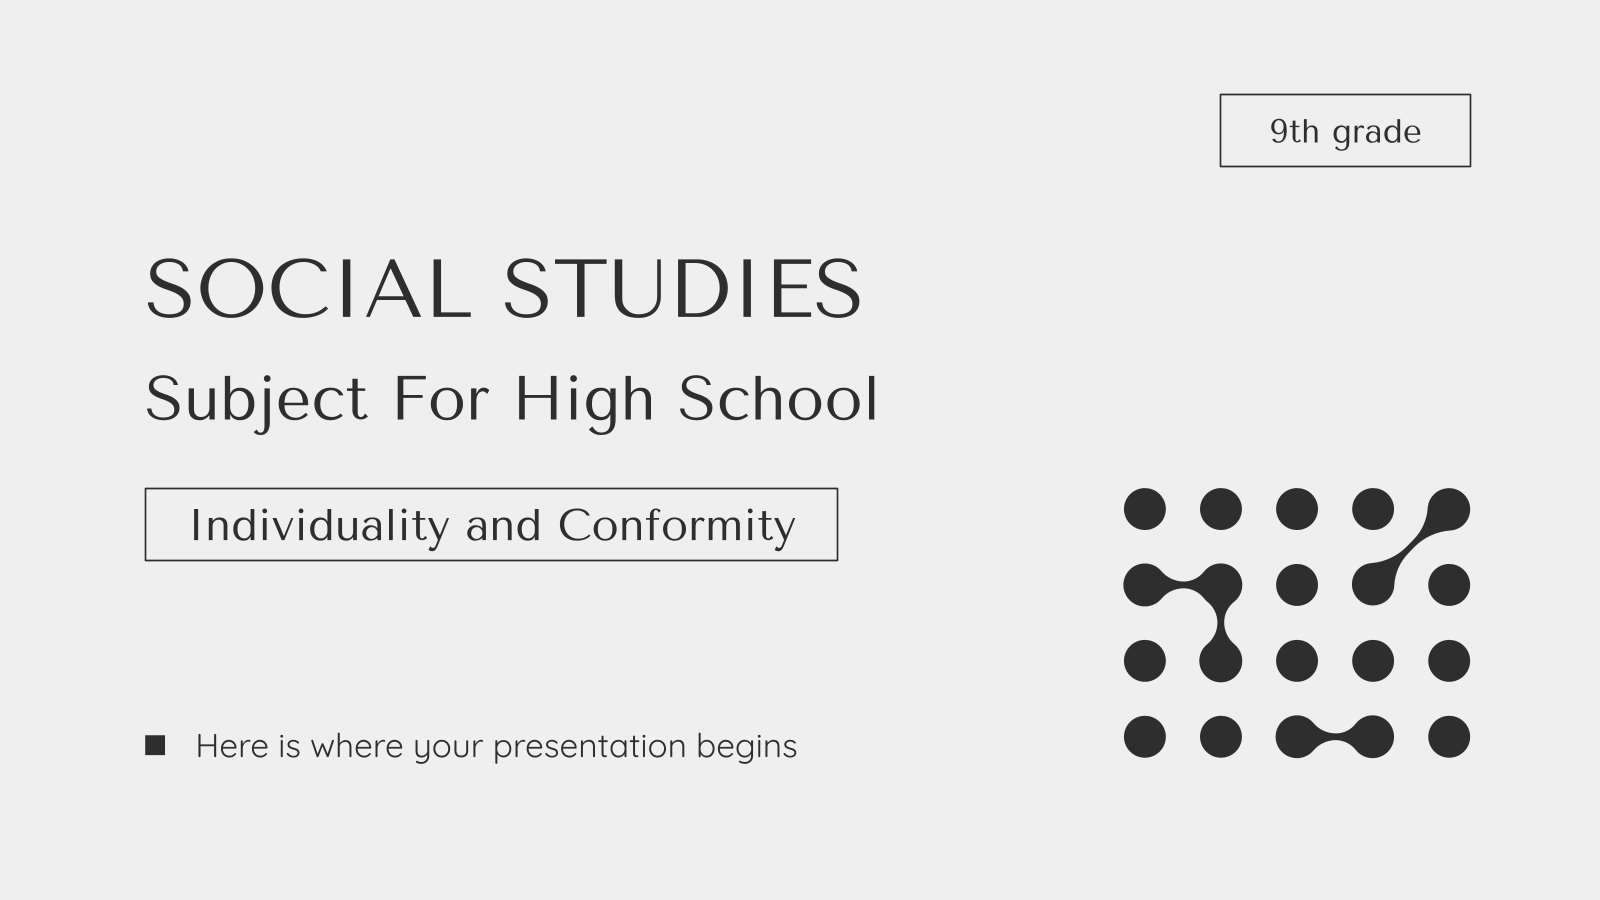 Social Science Subject for High School - 9th Grade: Individuality and Conformity presentation template